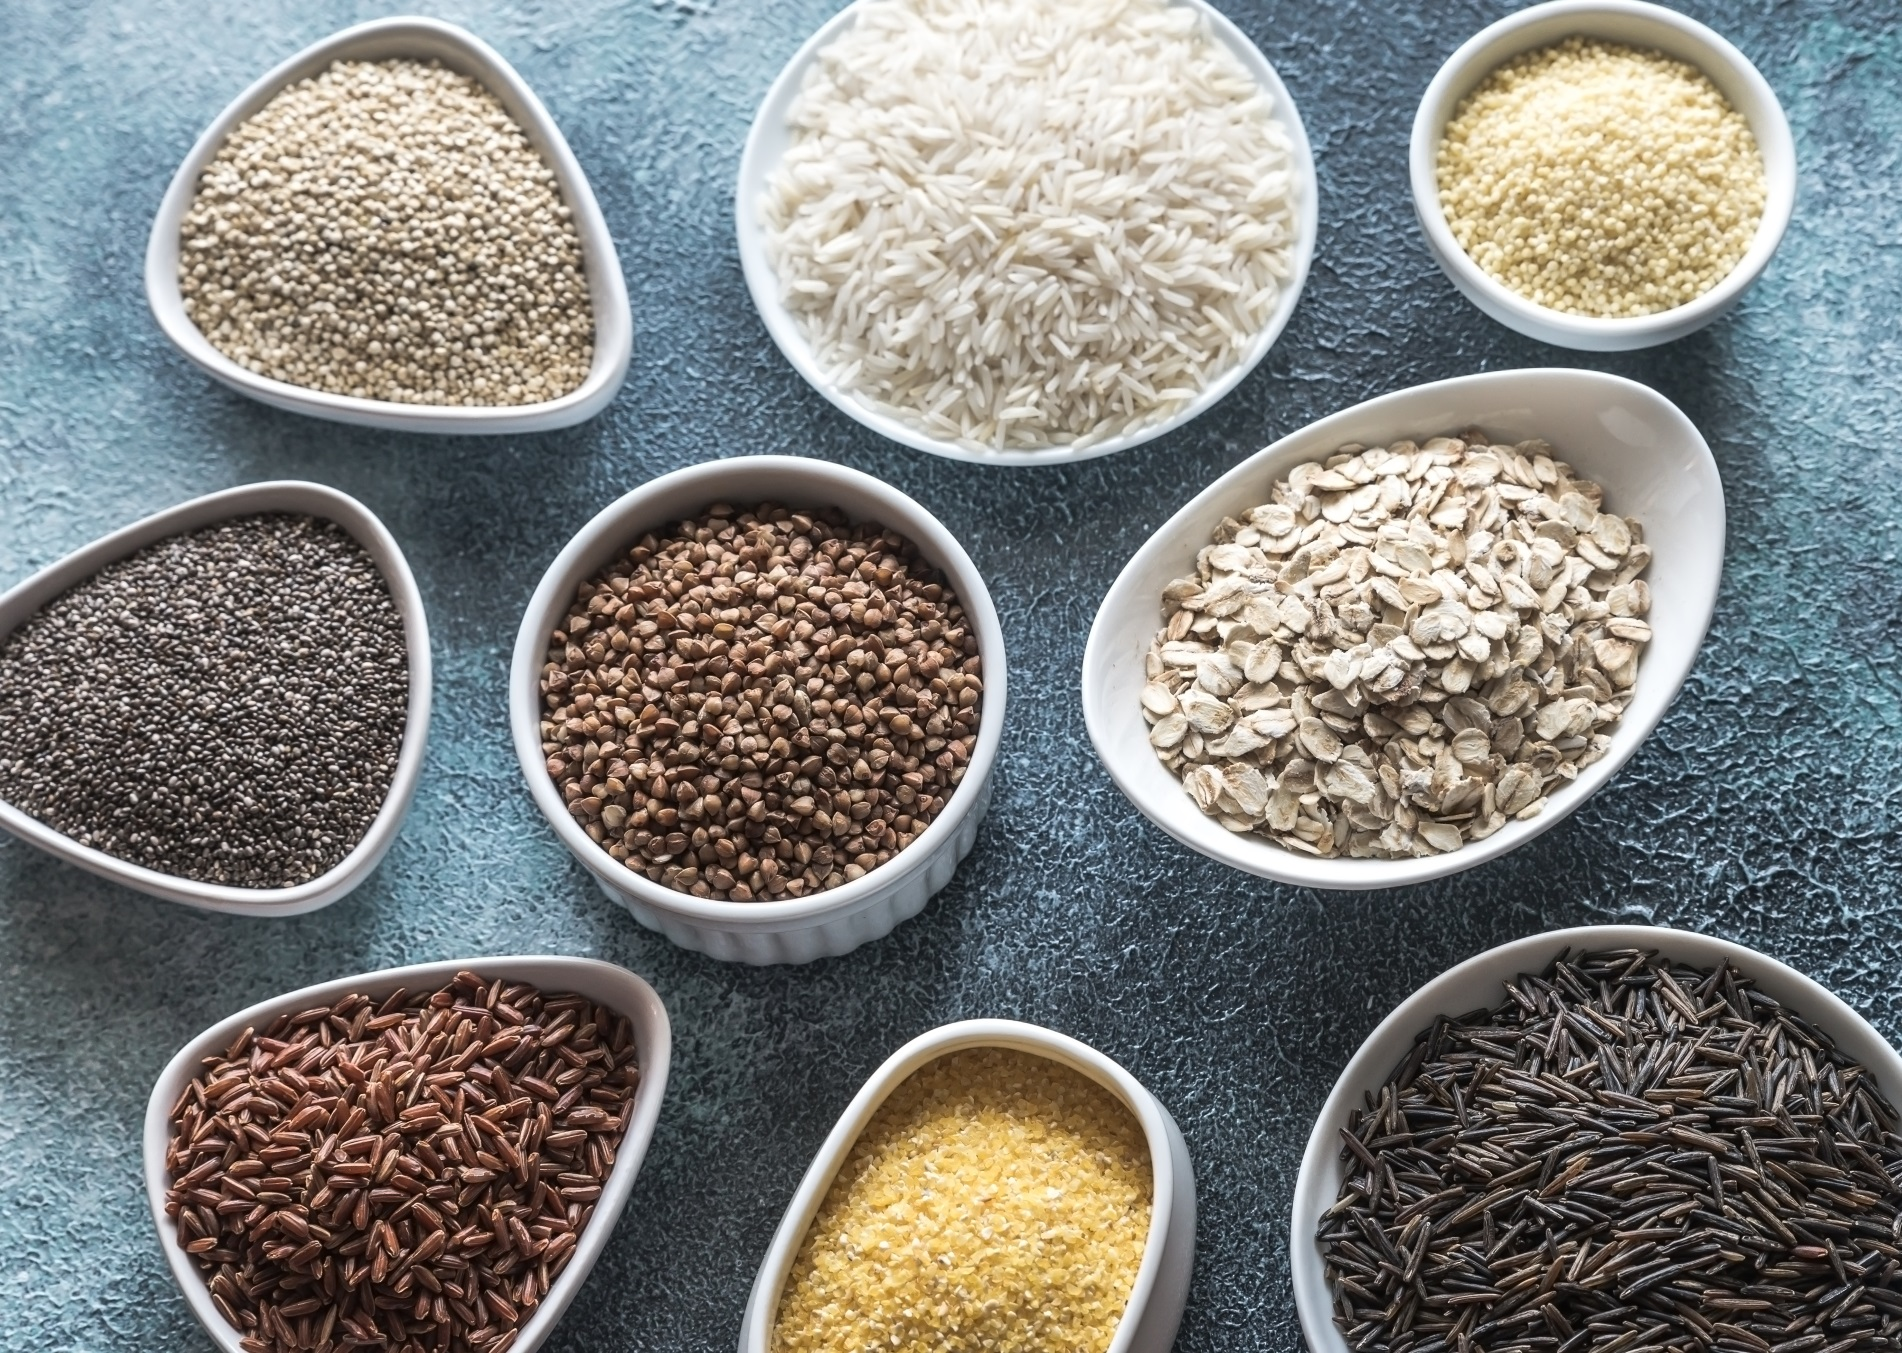 Picture of many different types of gluten free food